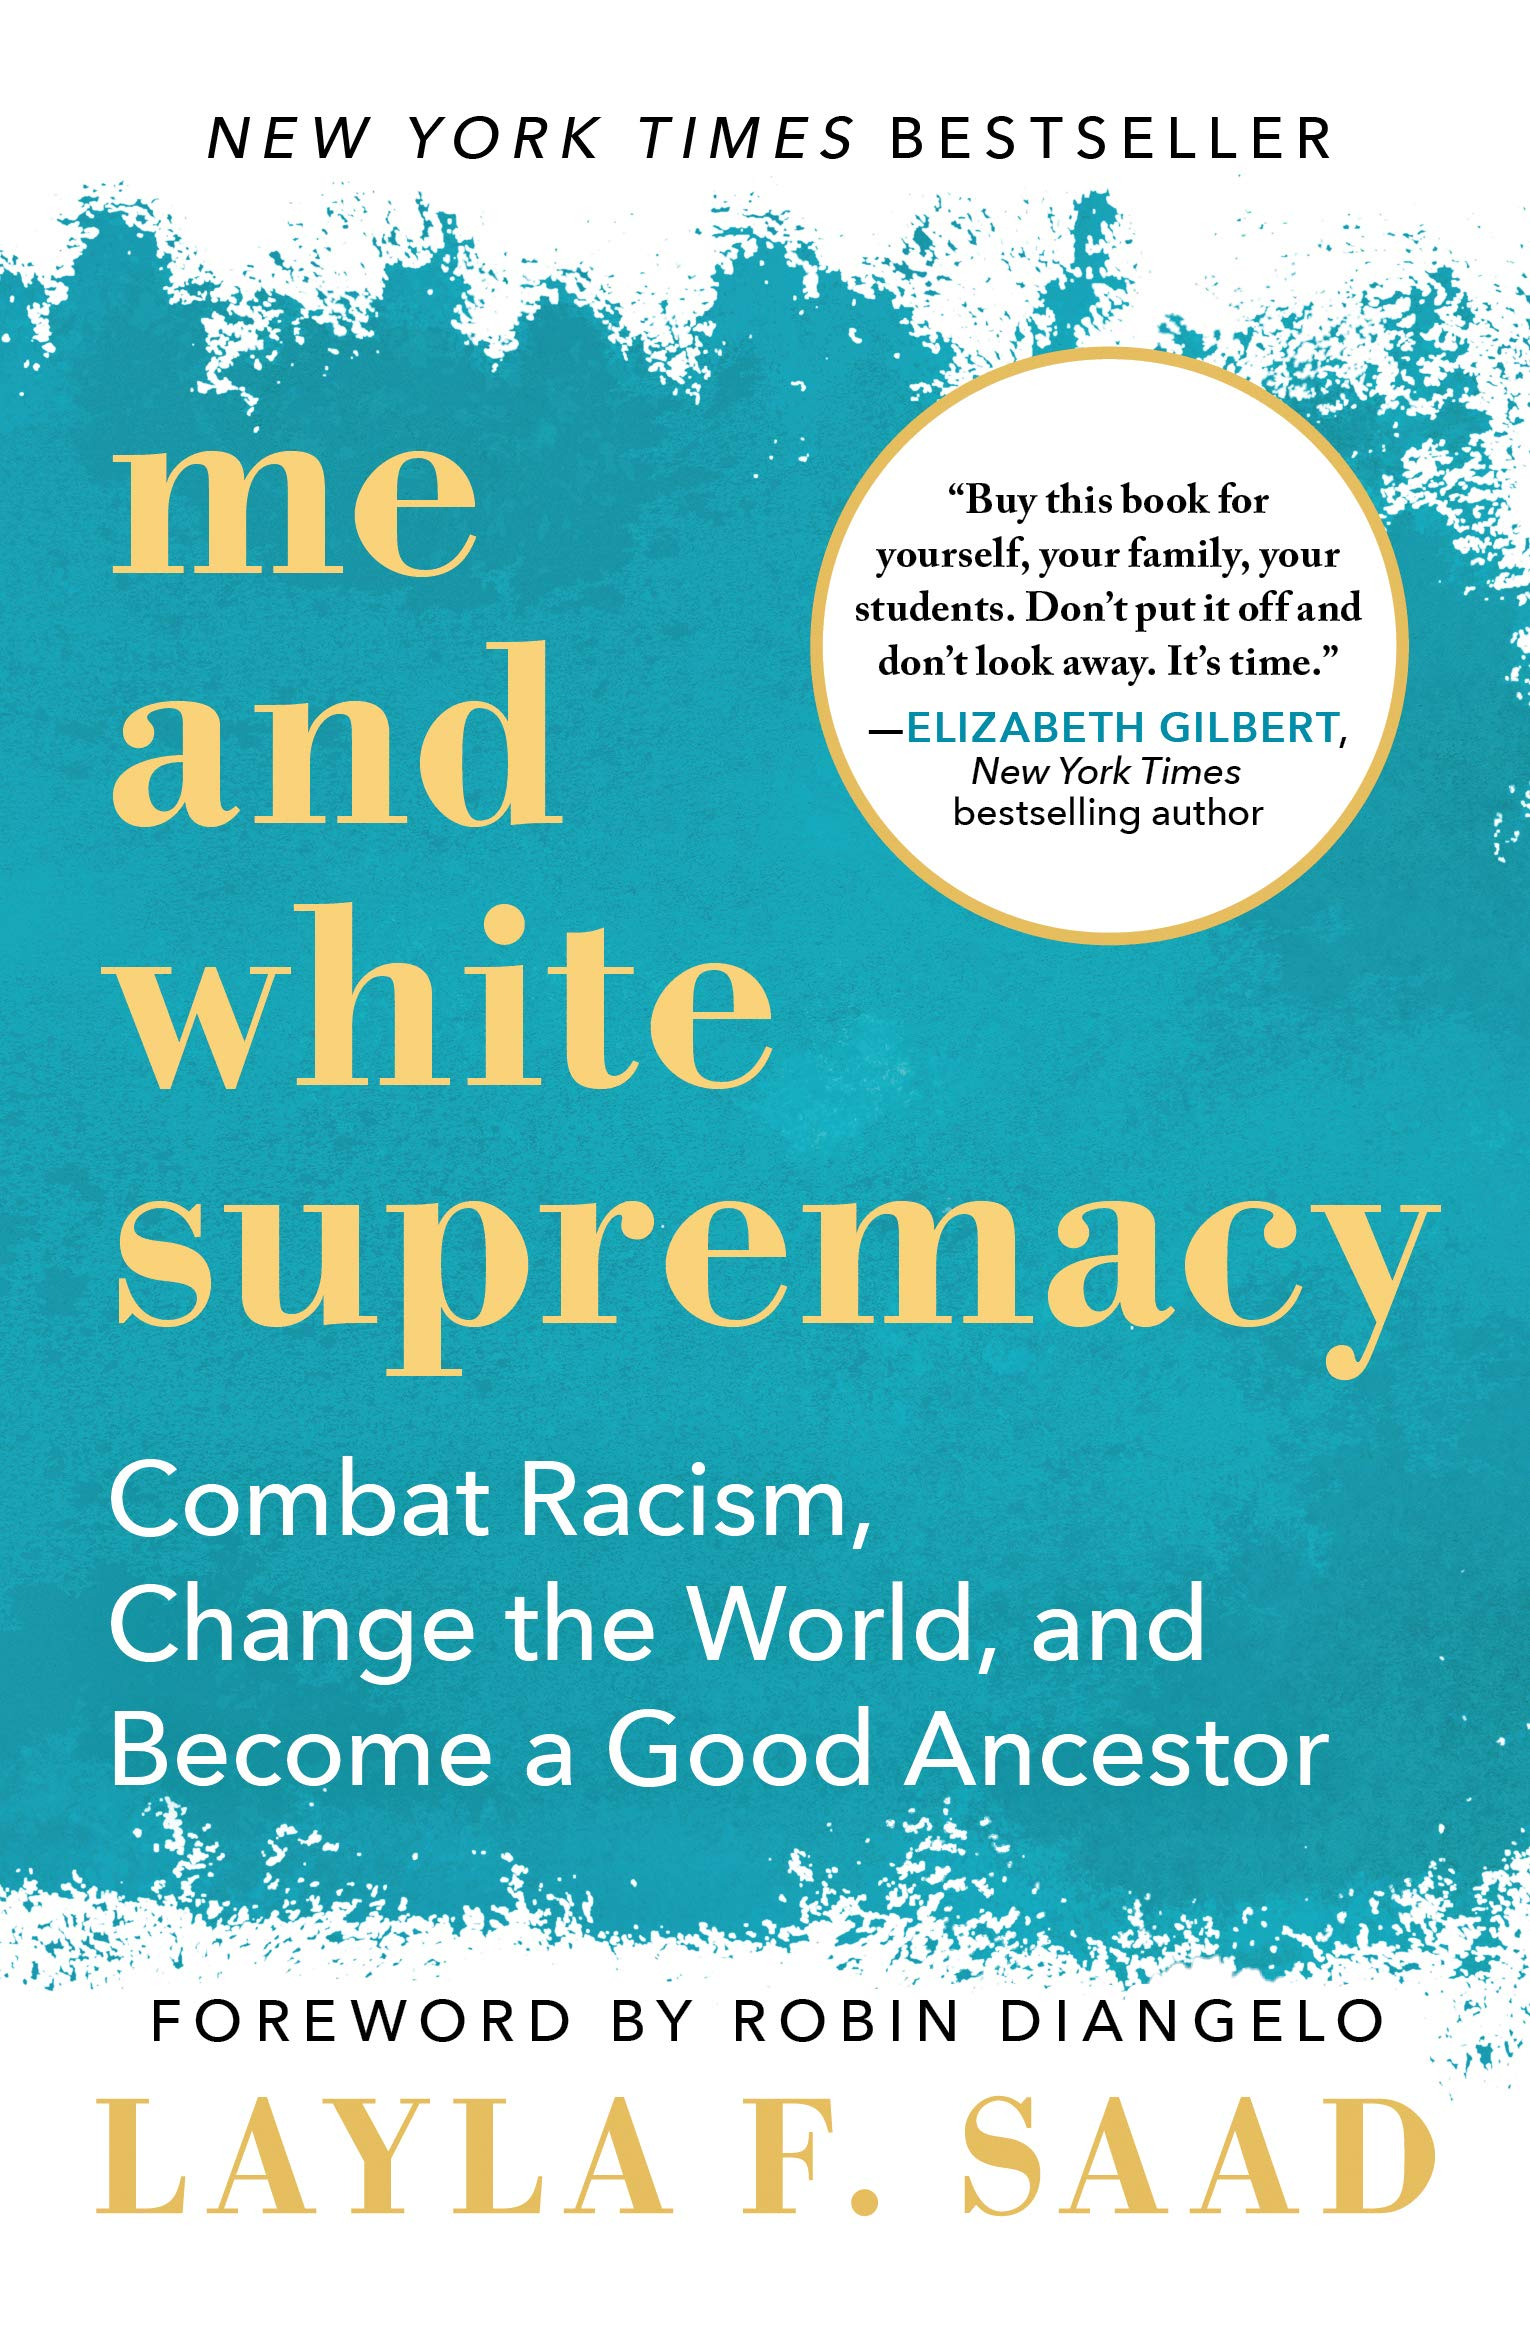 'Me and White Supremacy' by Layla Saad